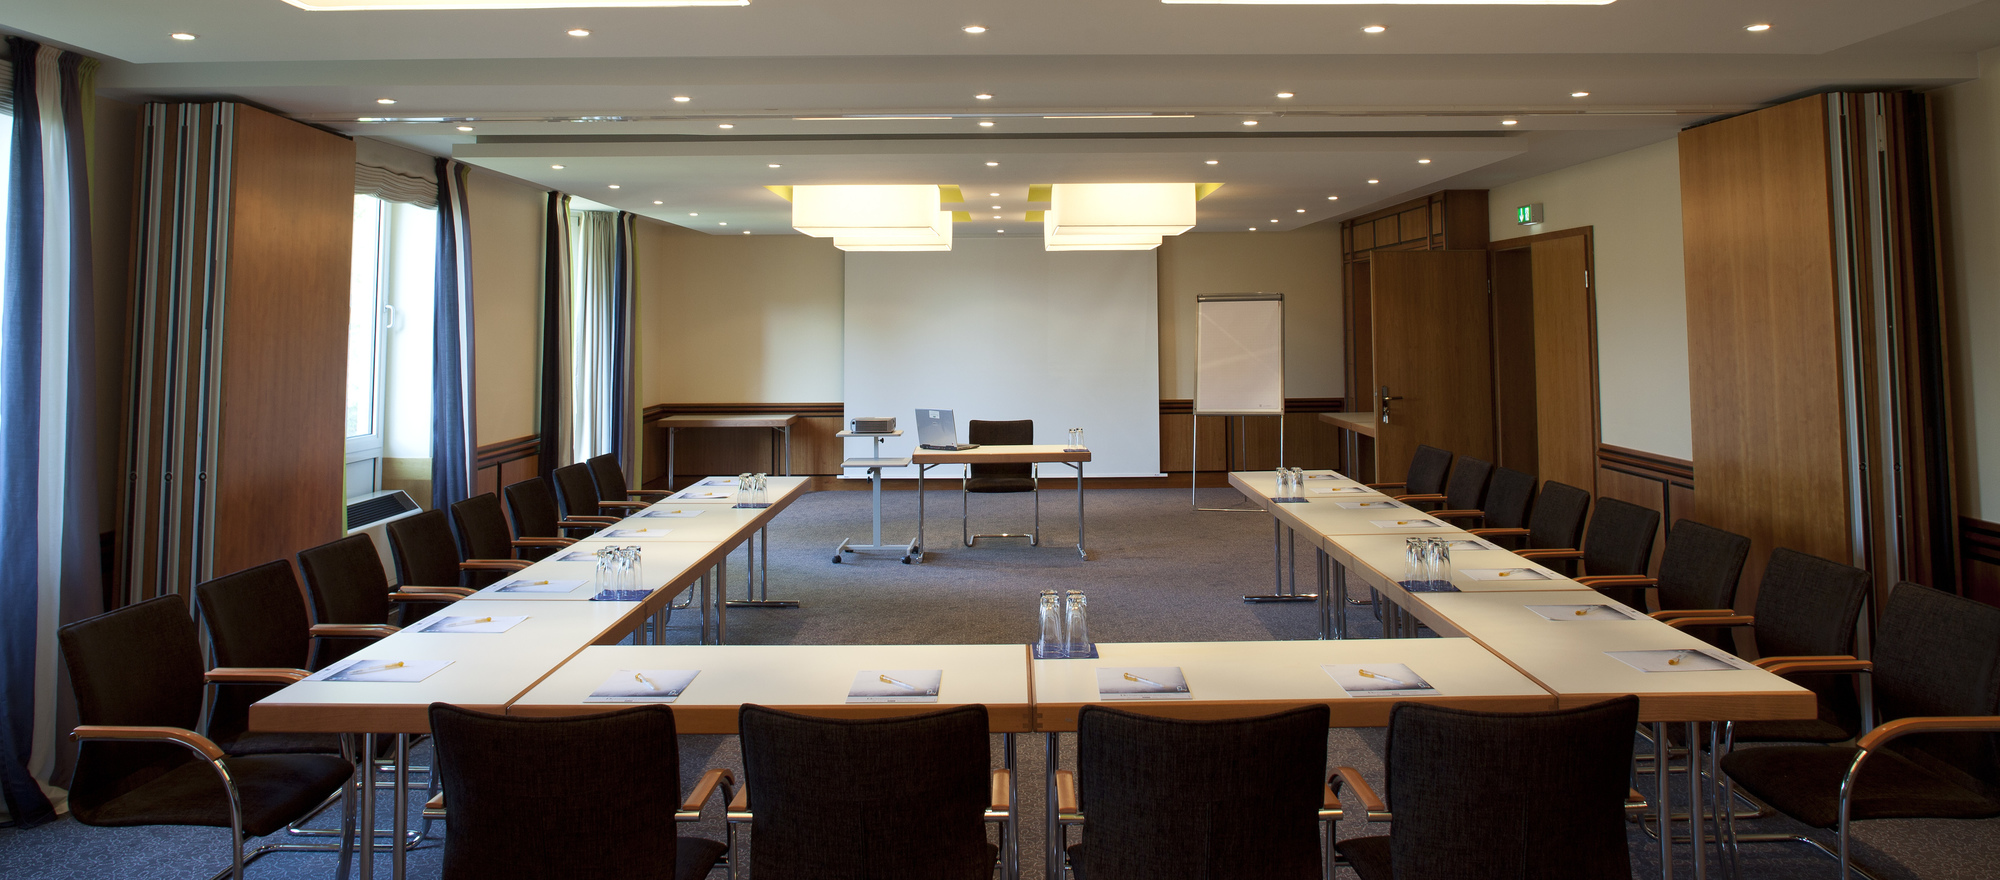 The 4-star-superior hotel Ringhotel Waldschloesschen in Schleswig offers you a pleasant and professional setting for conferences